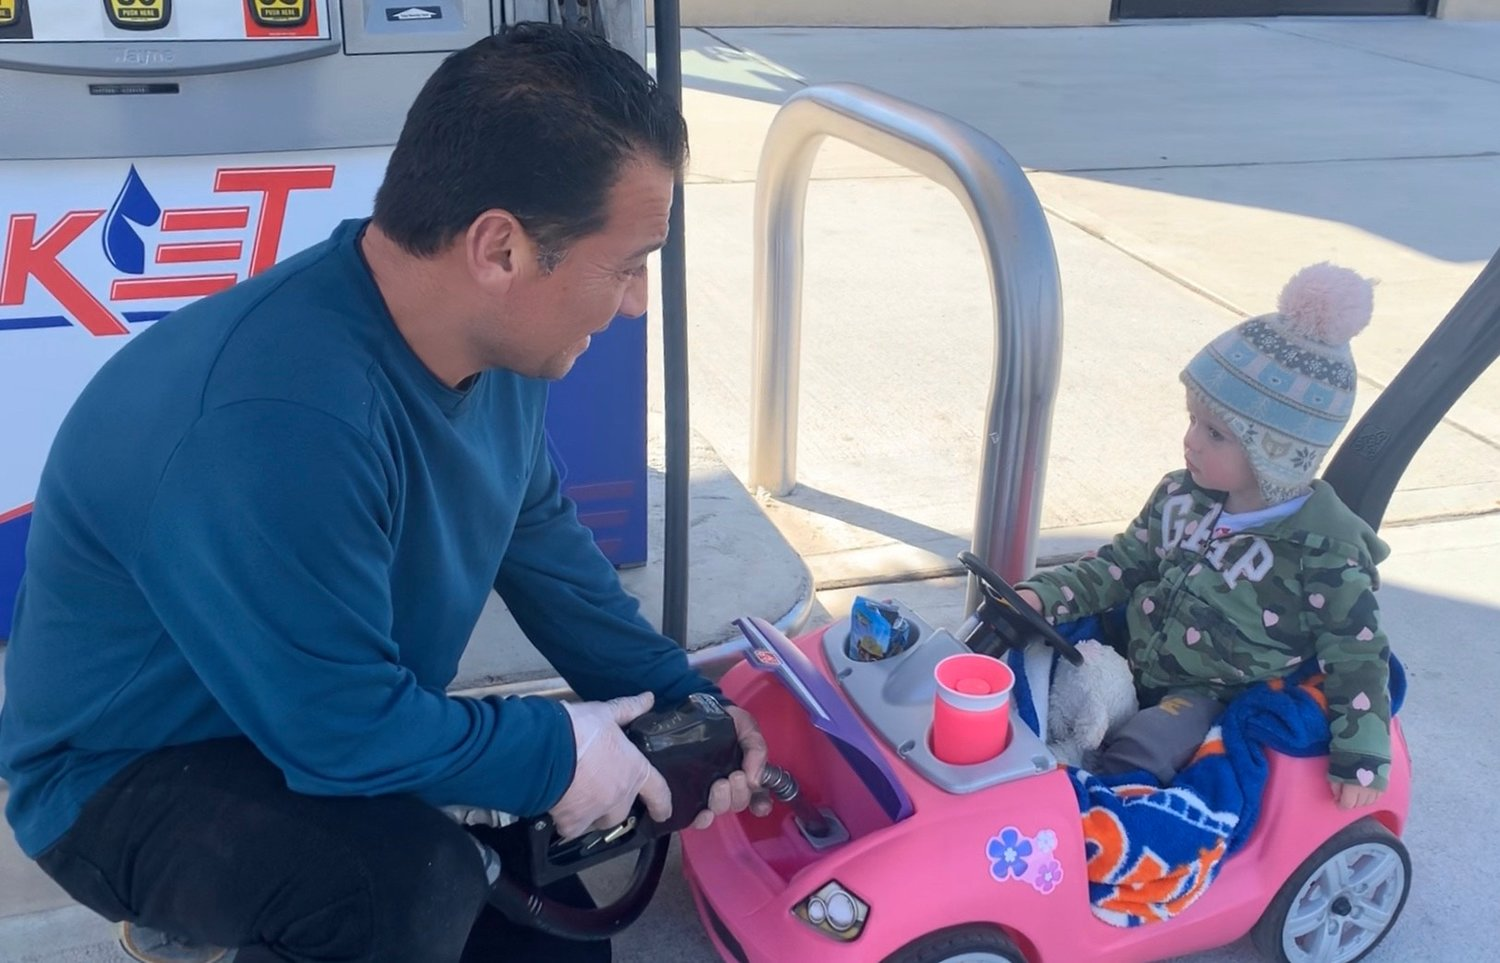 Akay Yalcinday fills up Ara Anderson's toy car at the Rocket Food Mart and gas station in Lynbrook regularly.